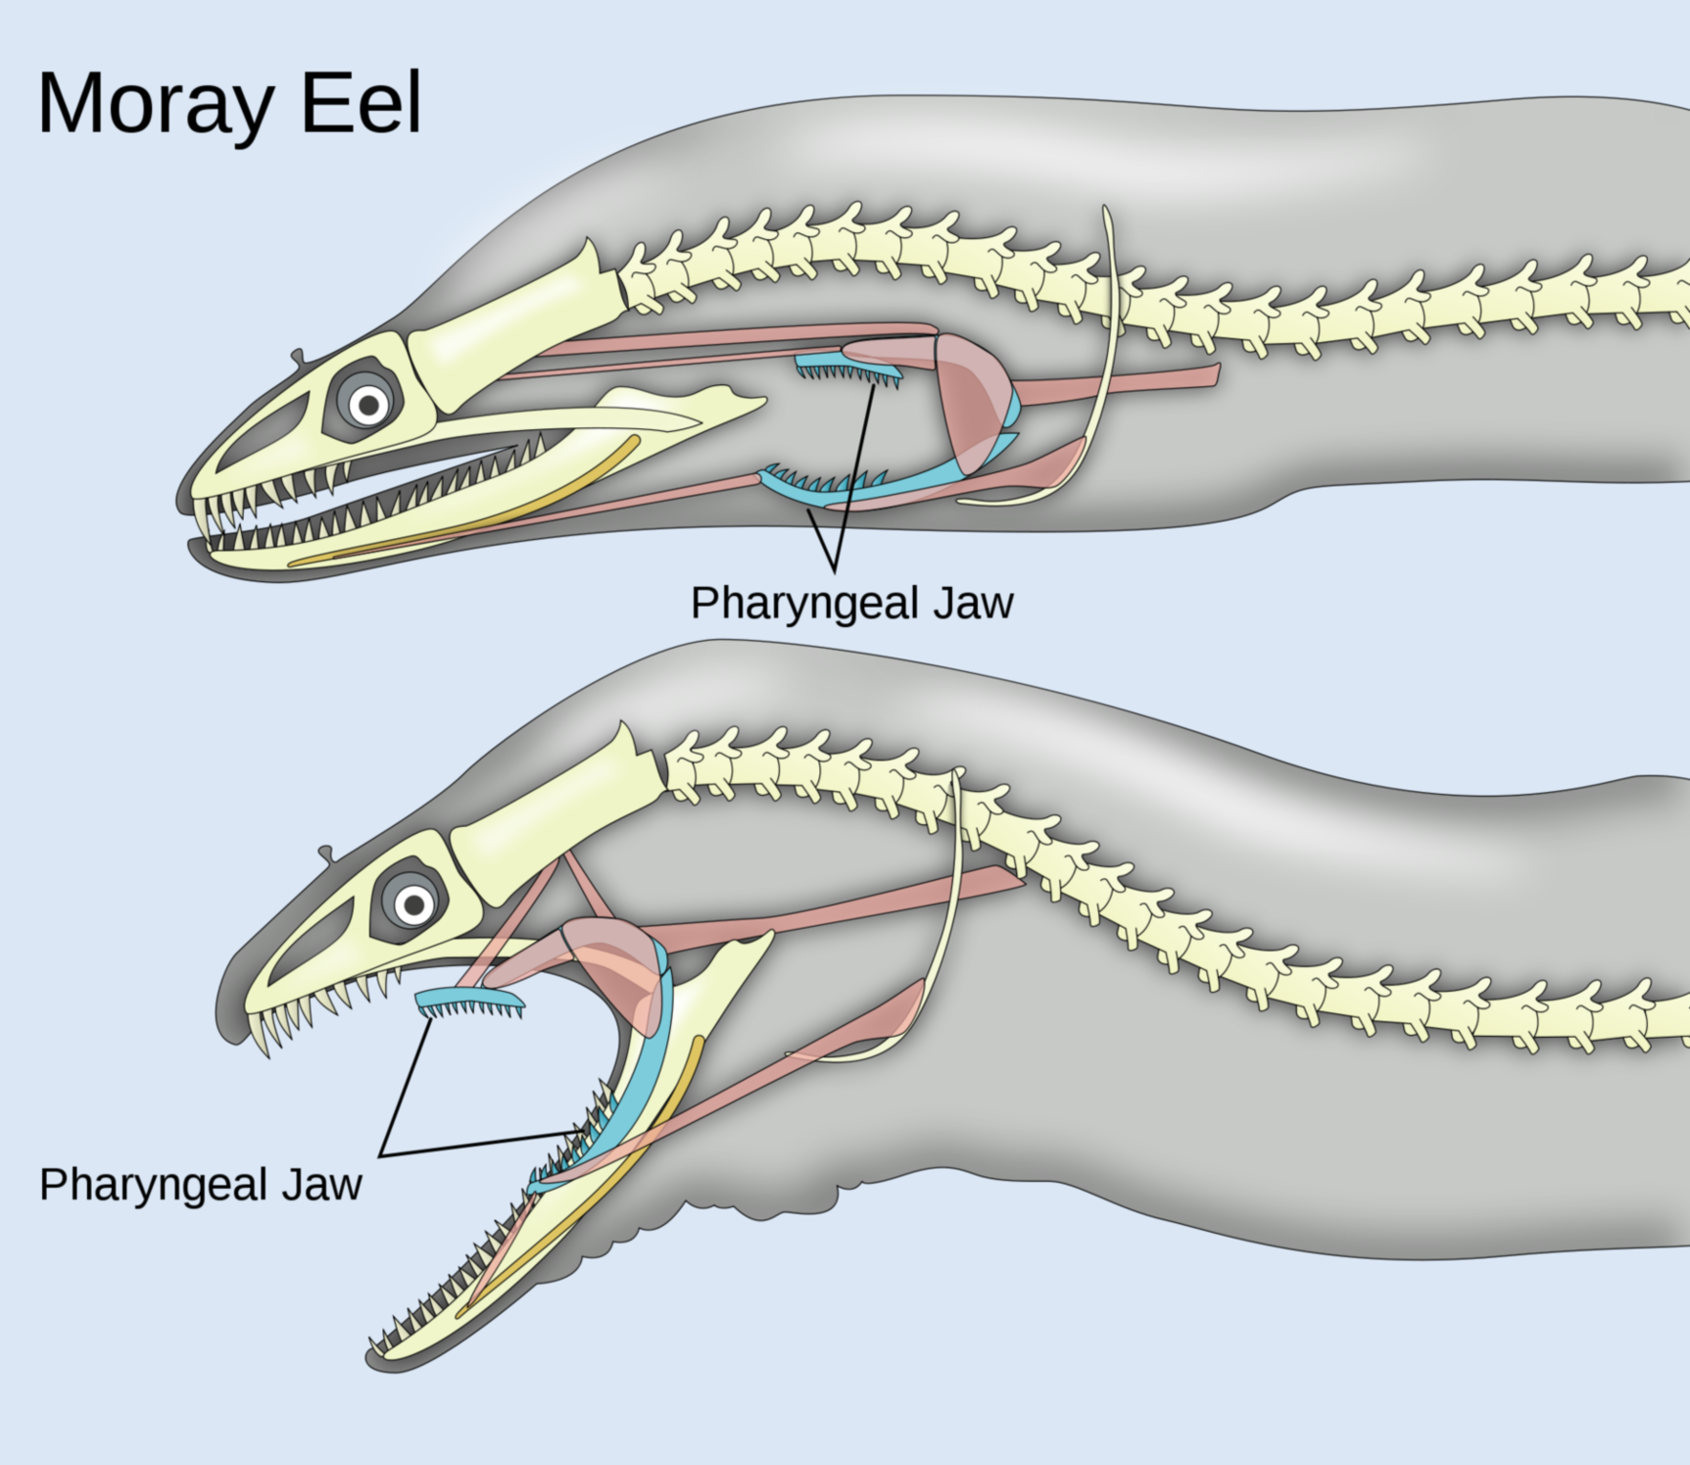 This image show how moray eel open its mouth using its pharyngeal Jaw.